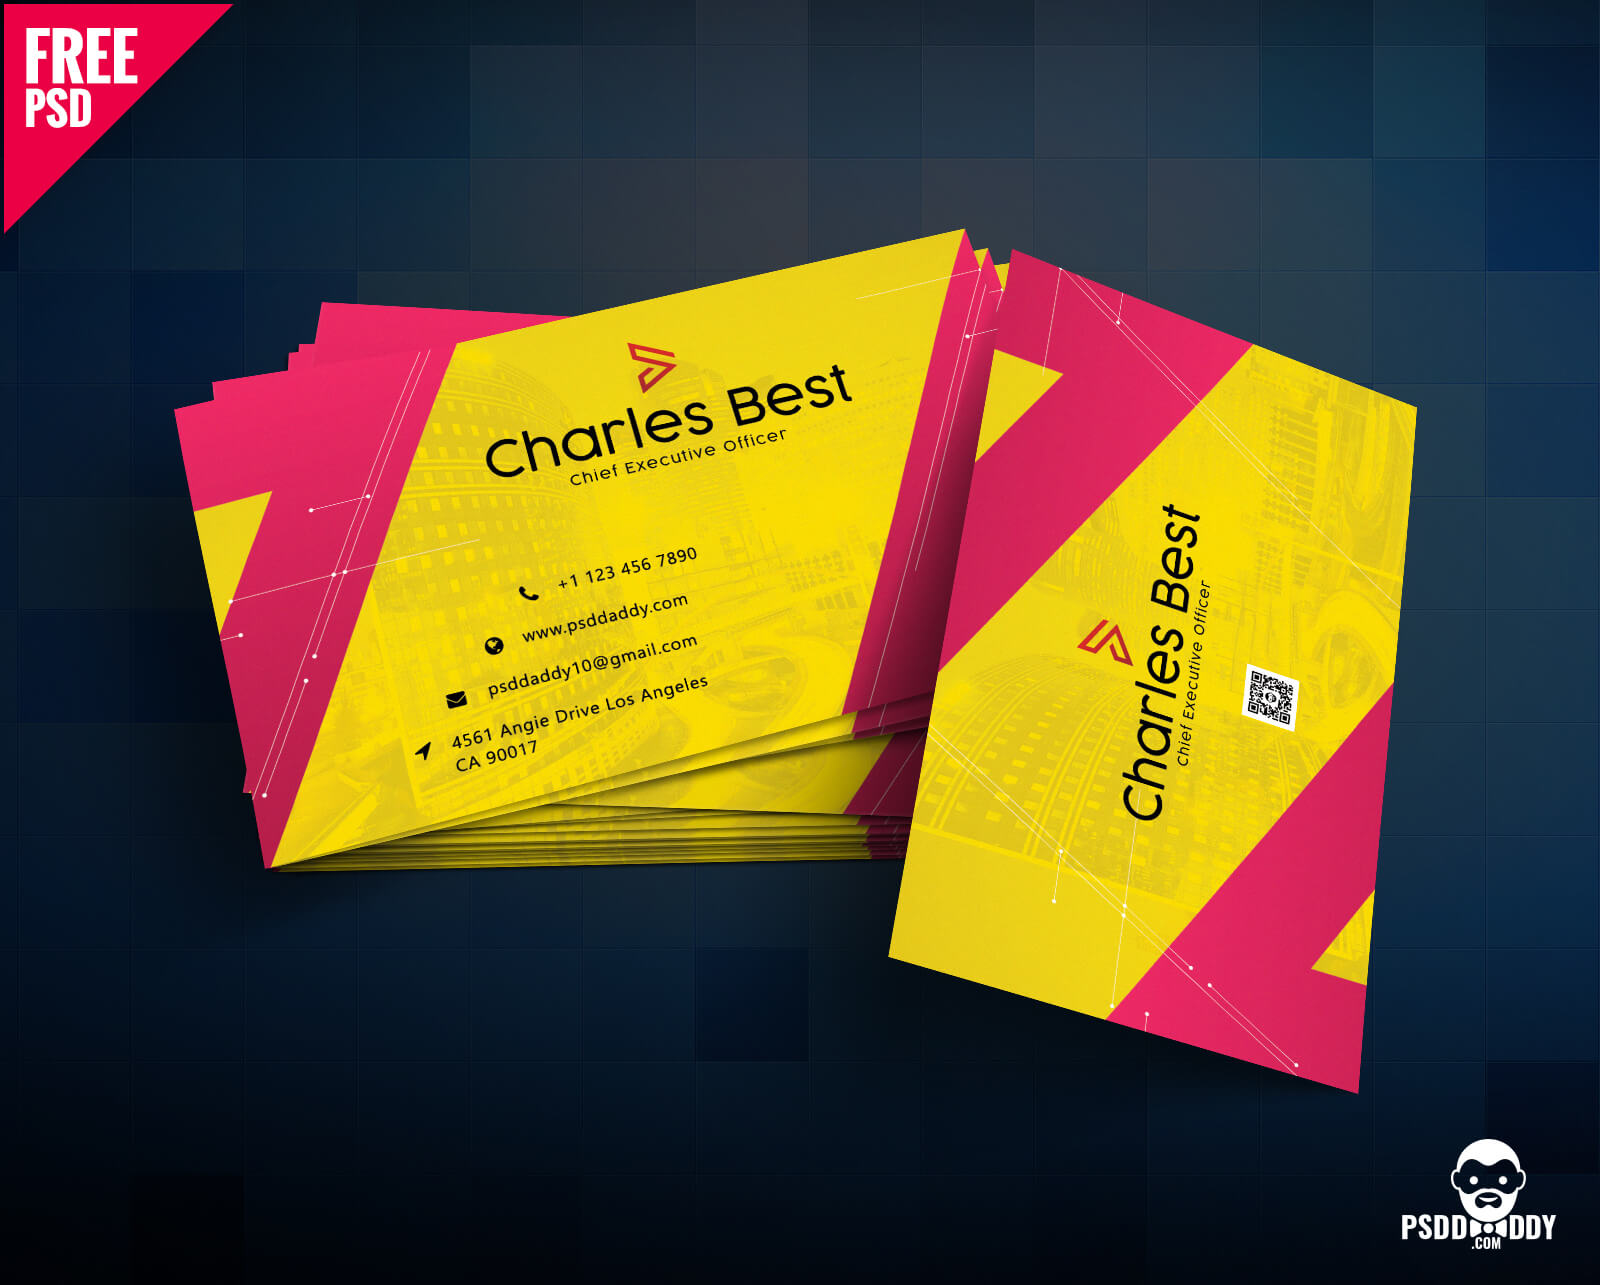 Download] Creative Business Card Free Psd | Psddaddy Intended For Psd Visiting Card Templates